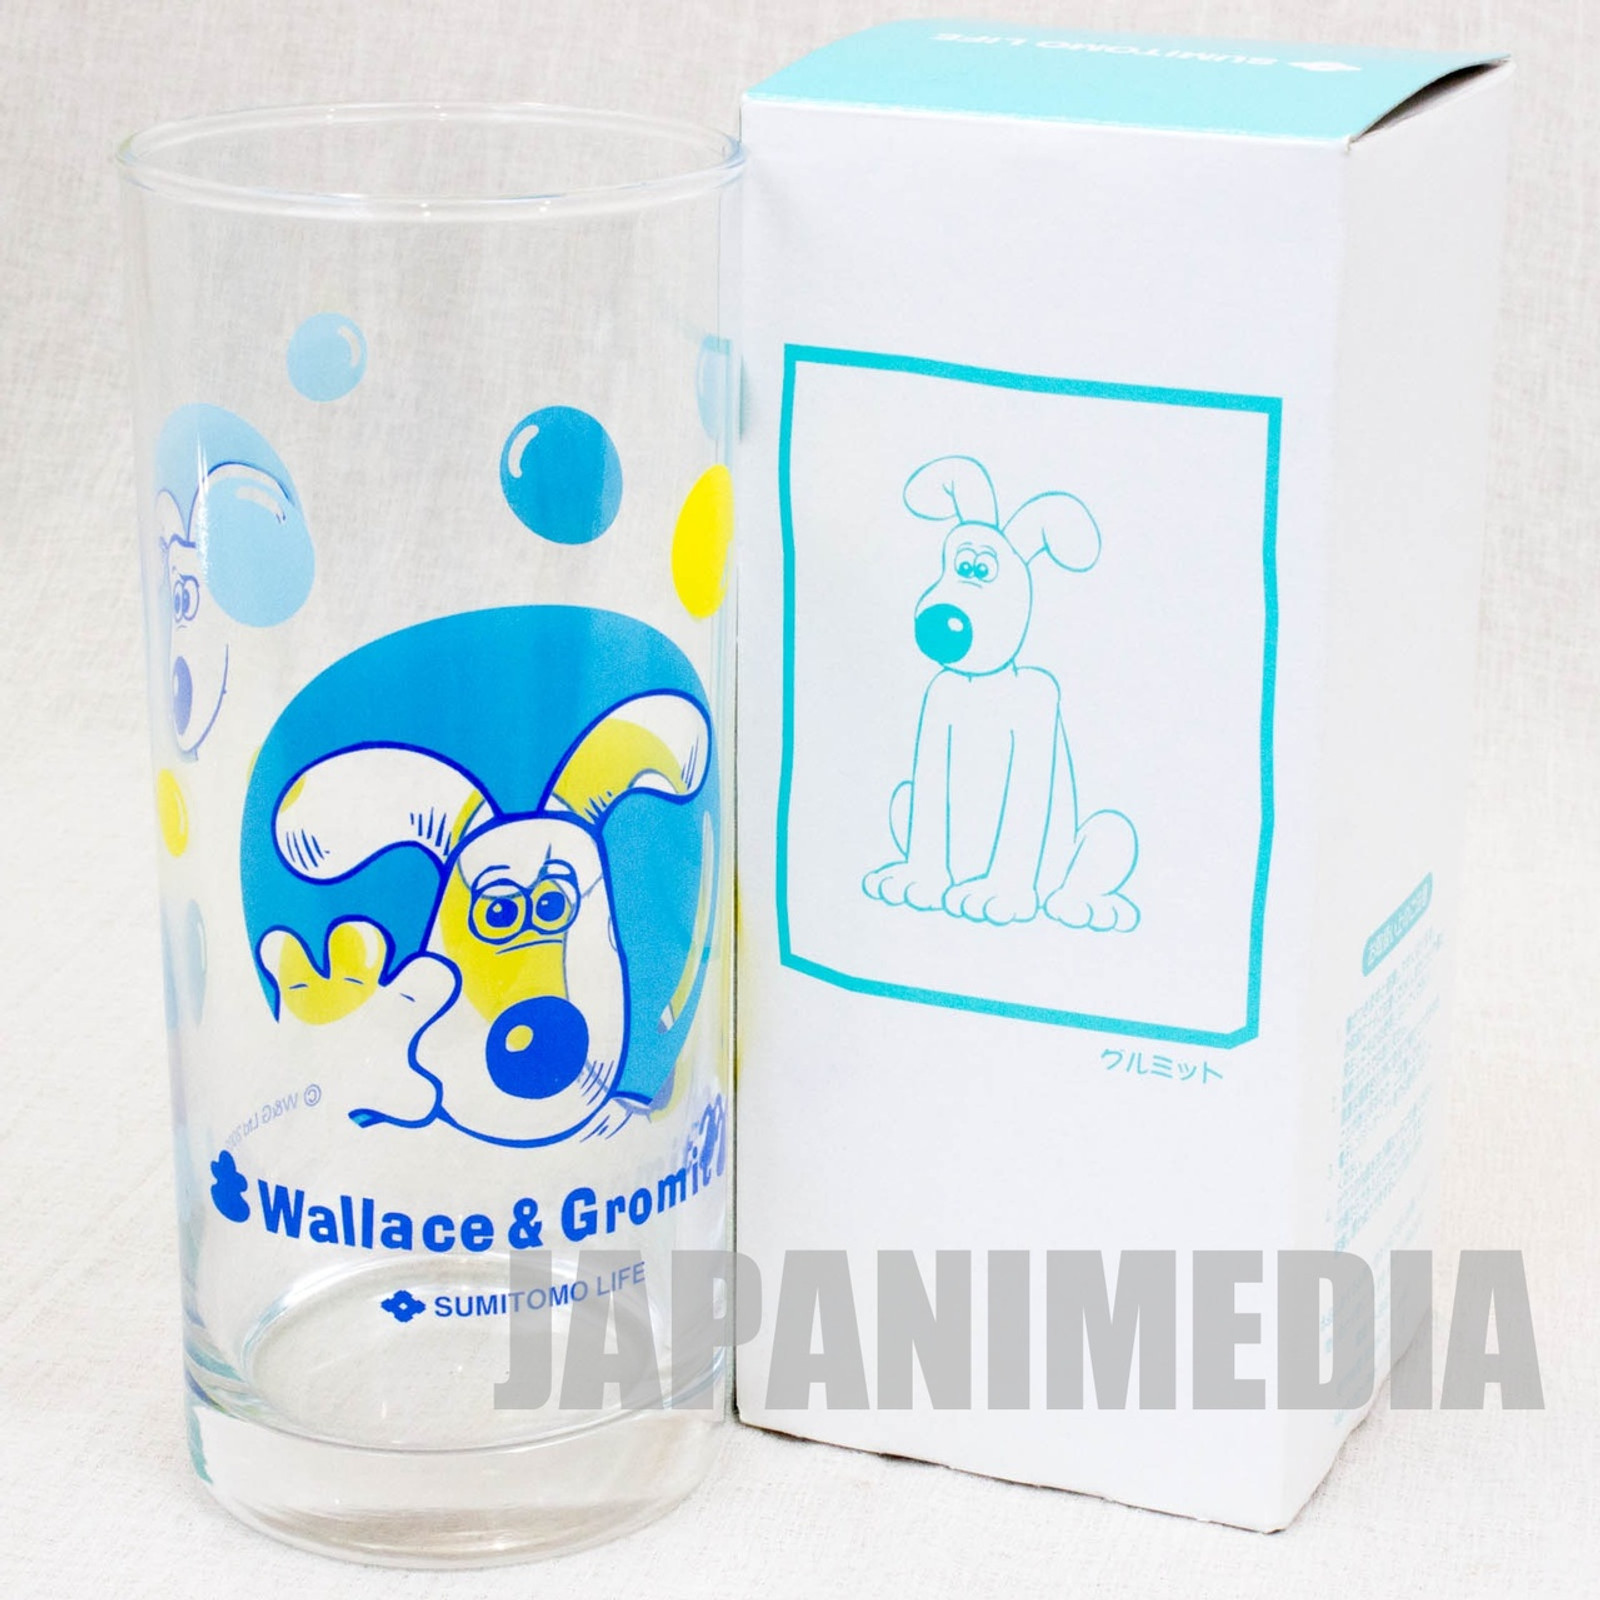 Wallace & Gromit Glass Blue ver. Sumitomo Life Novelty JAPAN Ardman ANIME